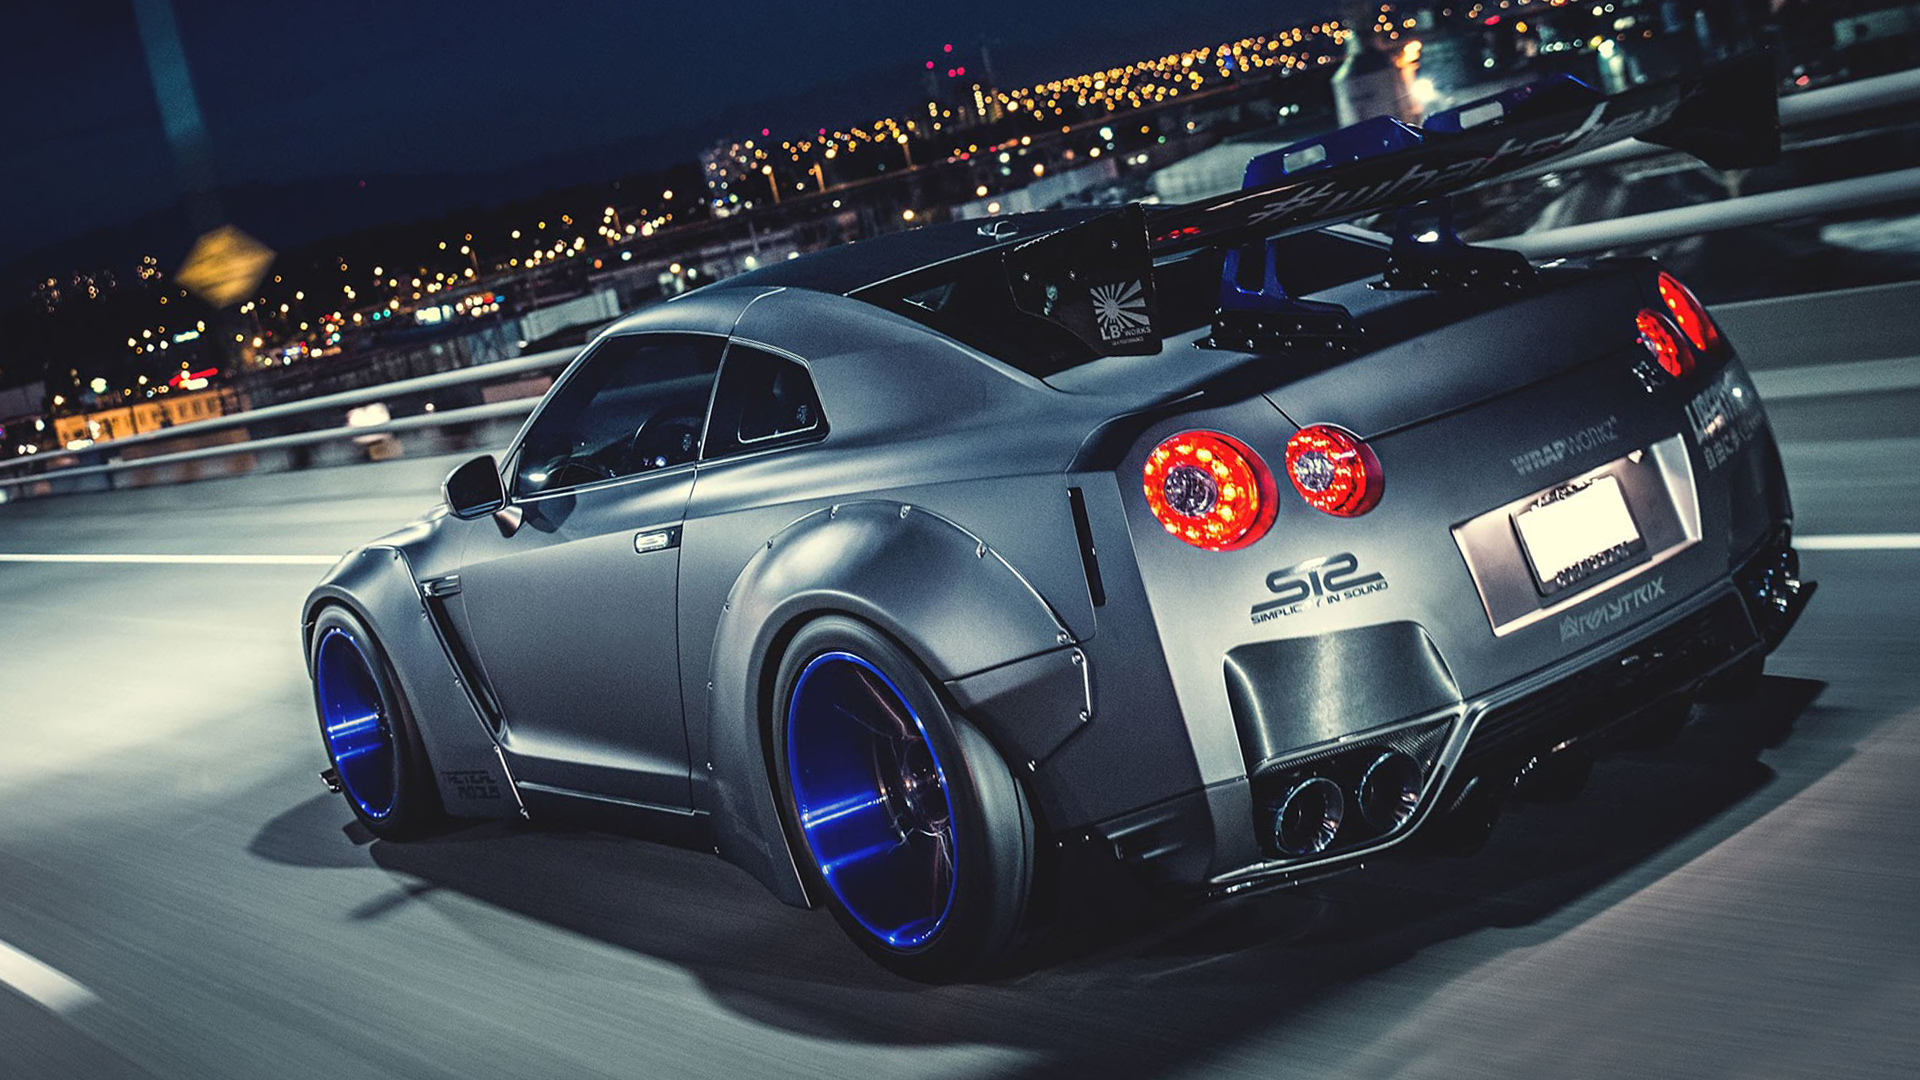 2019 Nissan Gt R Wallpapers Wallpaper Cave